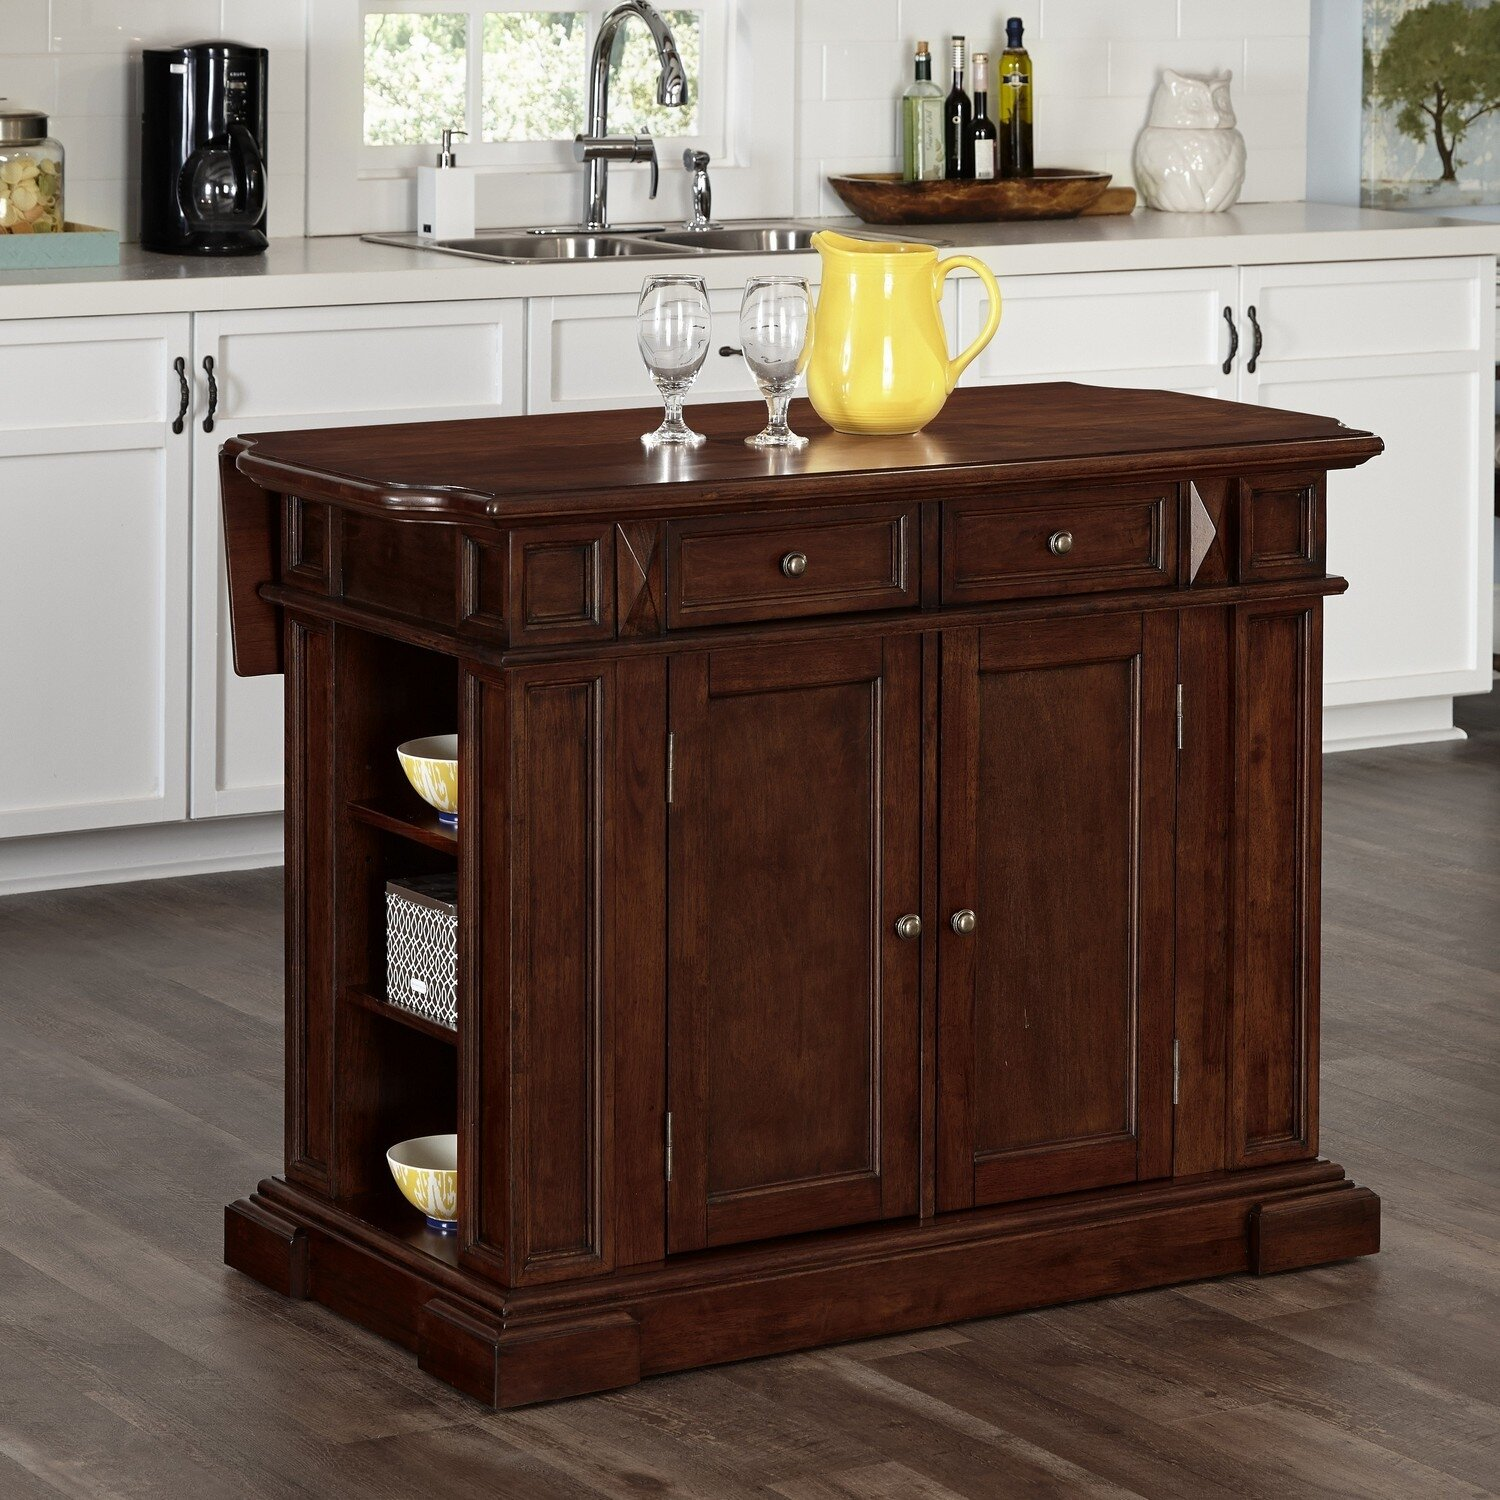 home styles americana kitchen island amp reviews wayfair home styles americana kitchen island wayfair